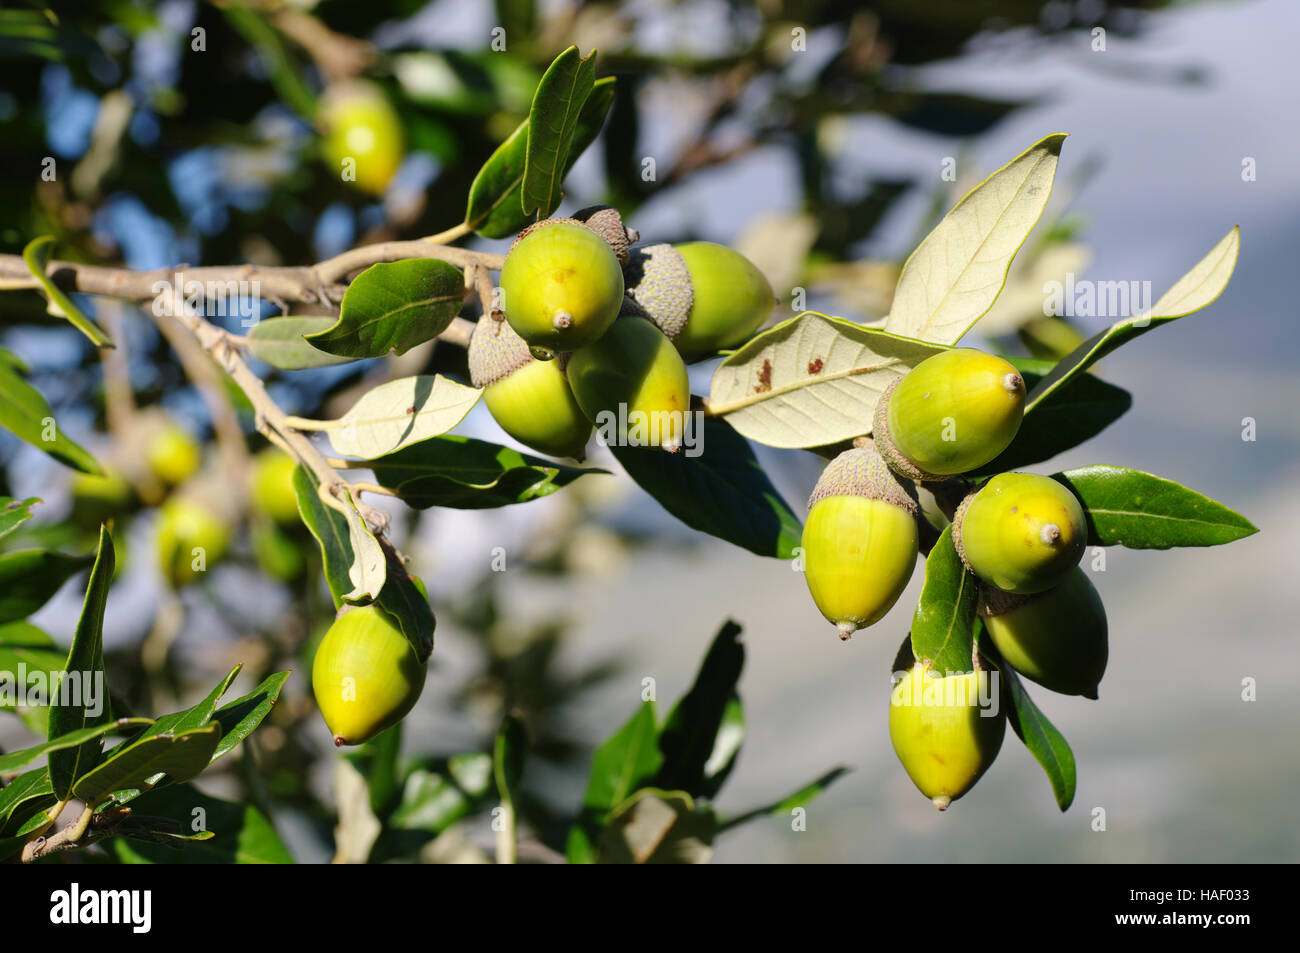 Quercus ilex, the Holm oak or Holly Oak (an evergreen oak) with acorns, family Fagaceae - Stock Image